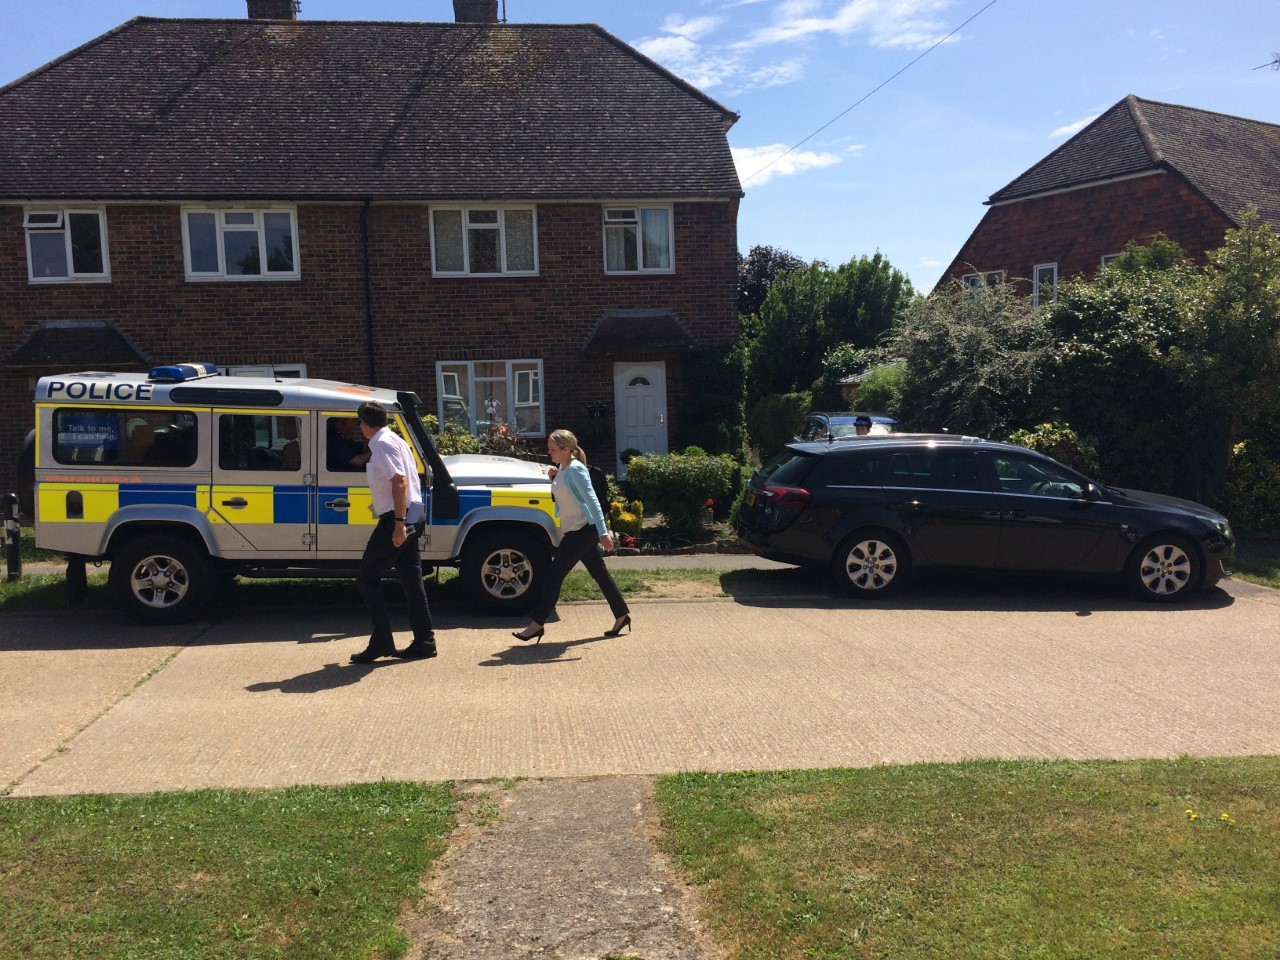 Police at the scene in Oaklands, Ardingly